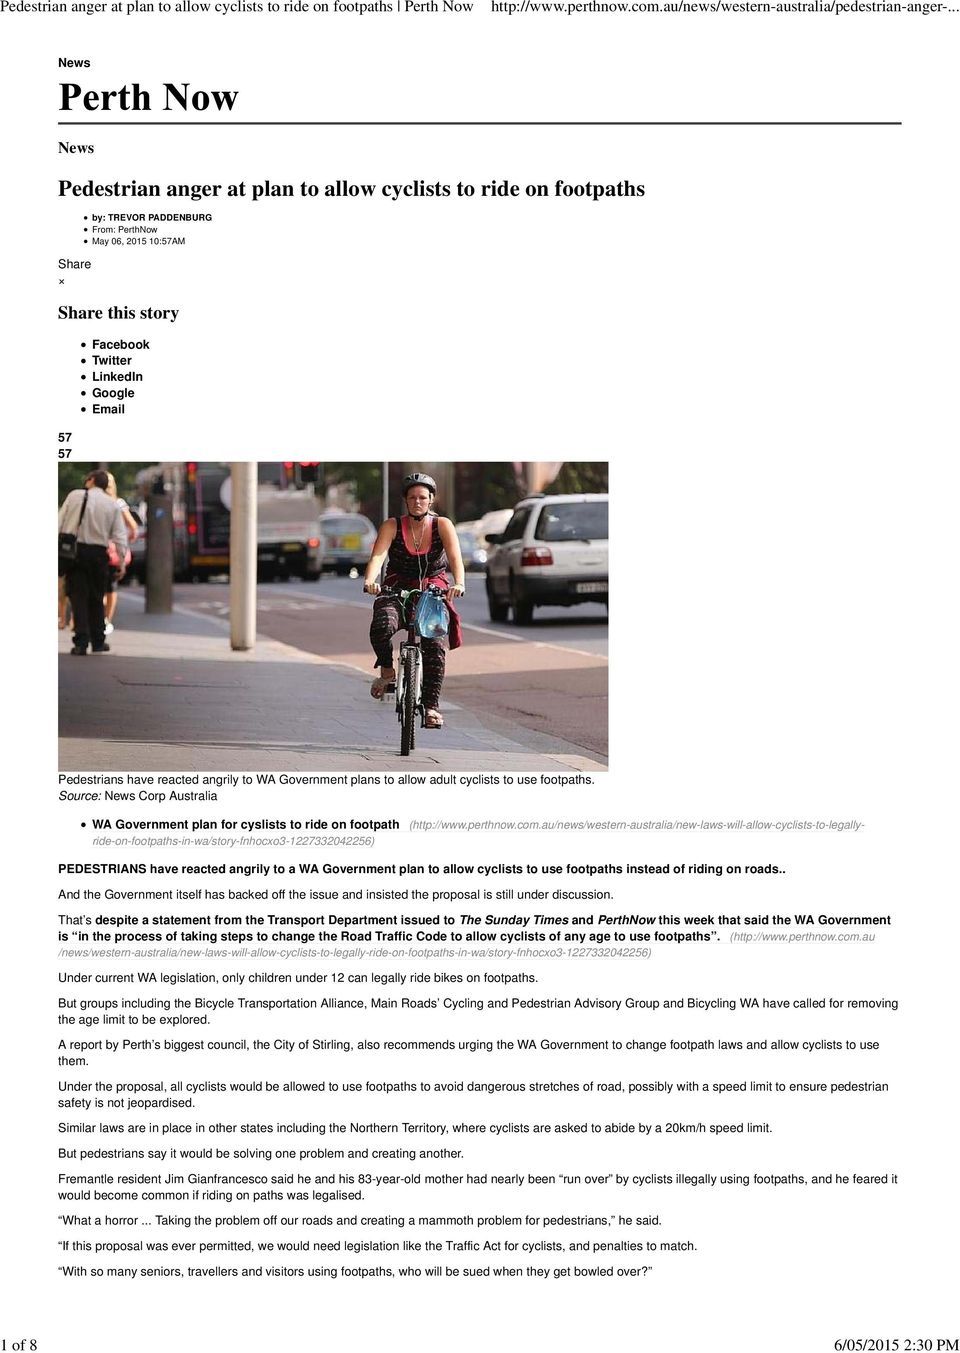 footpath (http://wwwperthnowcomau/news/western-australia/new-laws-will-allow-cyclists-to-legallyride-on-footpaths-in-wa/story-fnhocxo3-1227332042256) PEDESTRIANS have reacted angrily to a WA